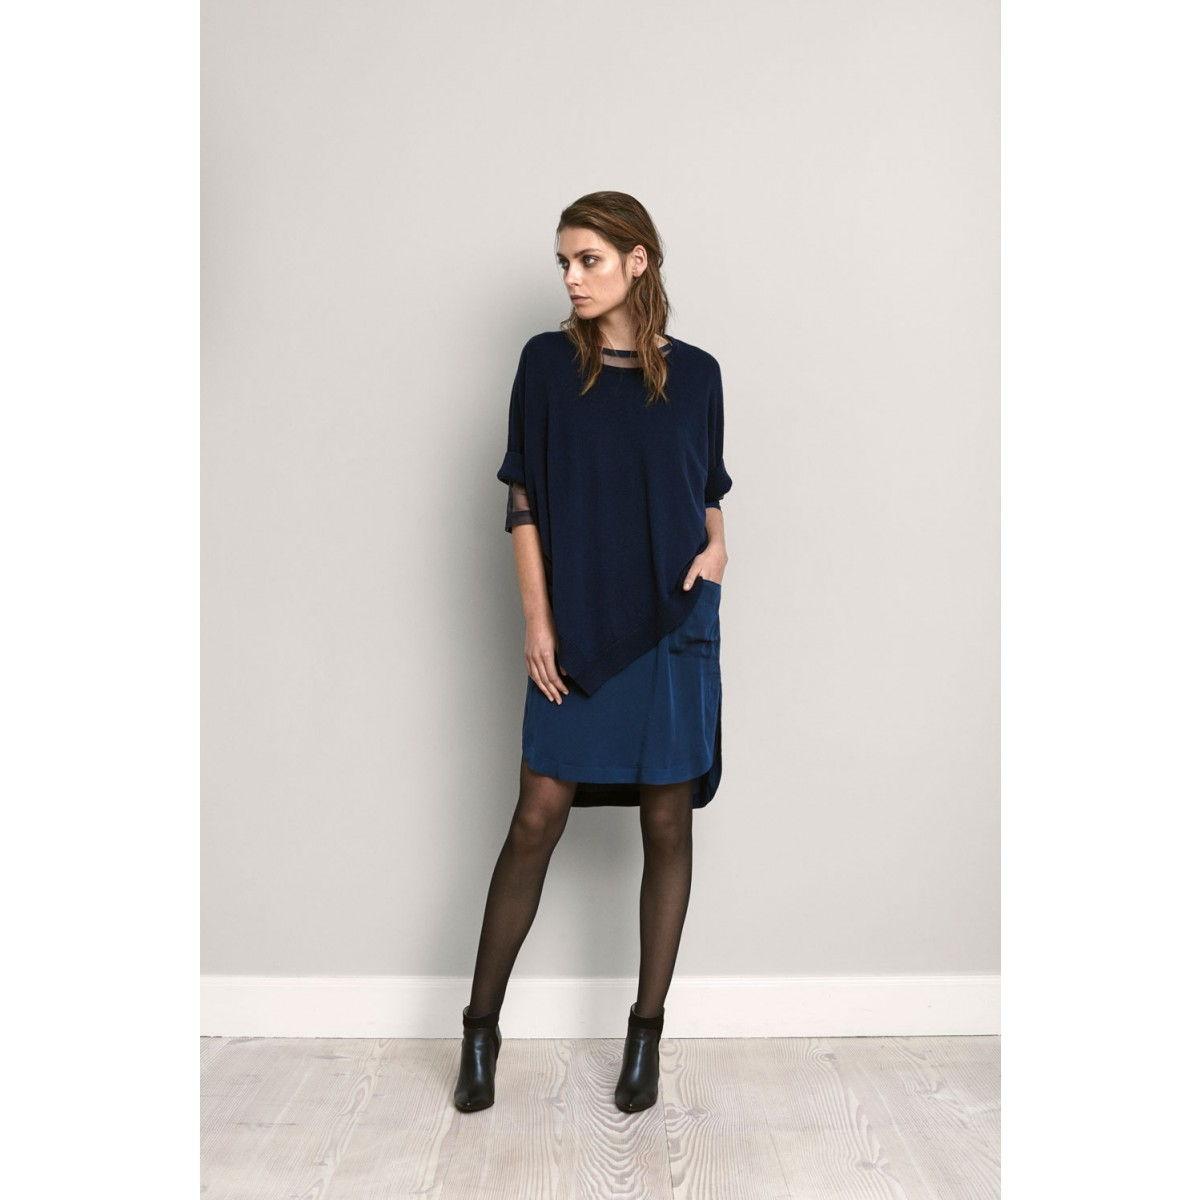 Rosemunde 6233-192 Dress Dark Blue-32